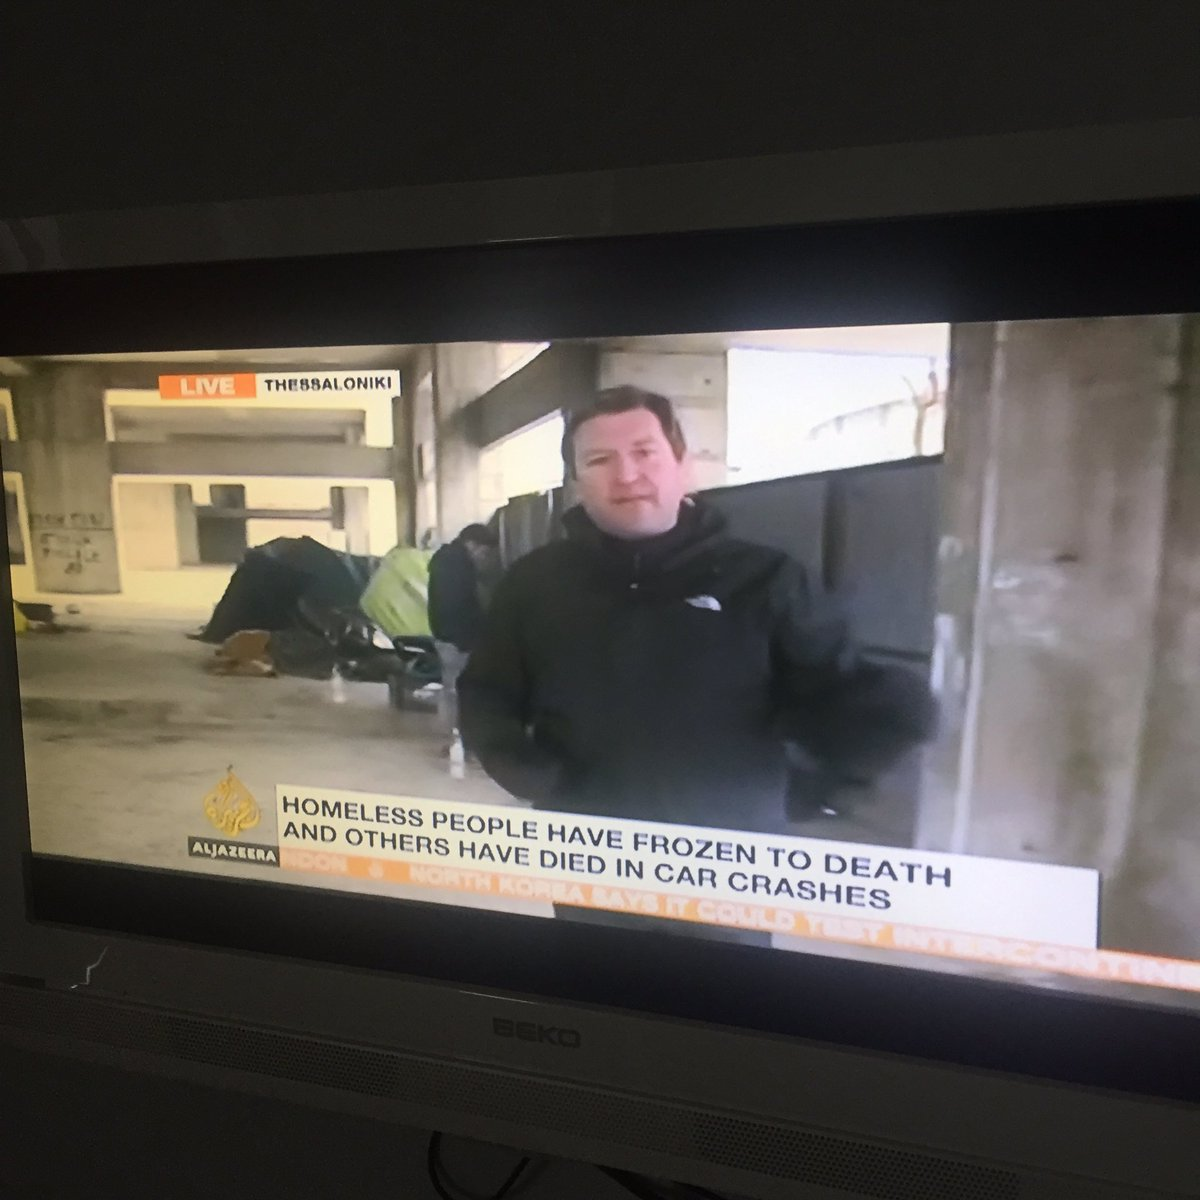 Al Jazeera reporting in Thessaloniki that Syrian refugees are organizing to feed not only other refugees but homeless Greeks in frigid temps